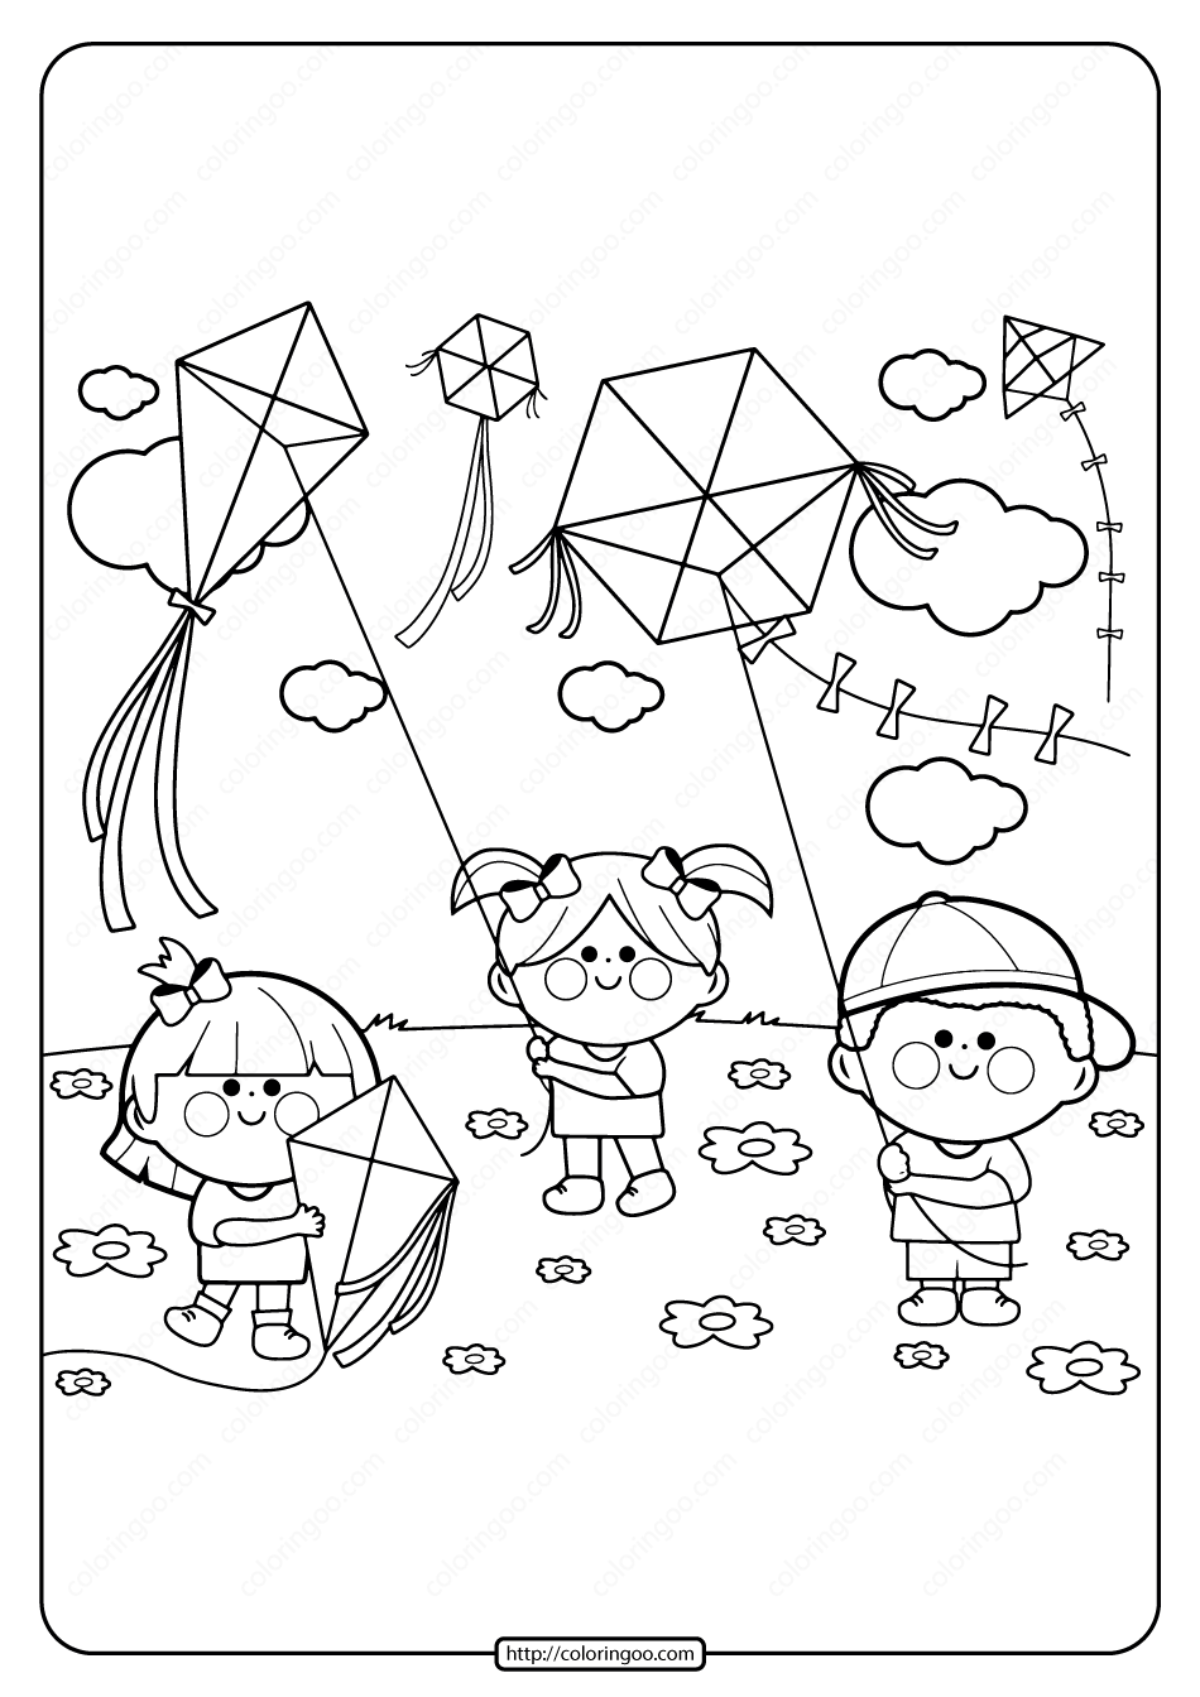 Kite coloring pages printable / Wind games | 1697x1200